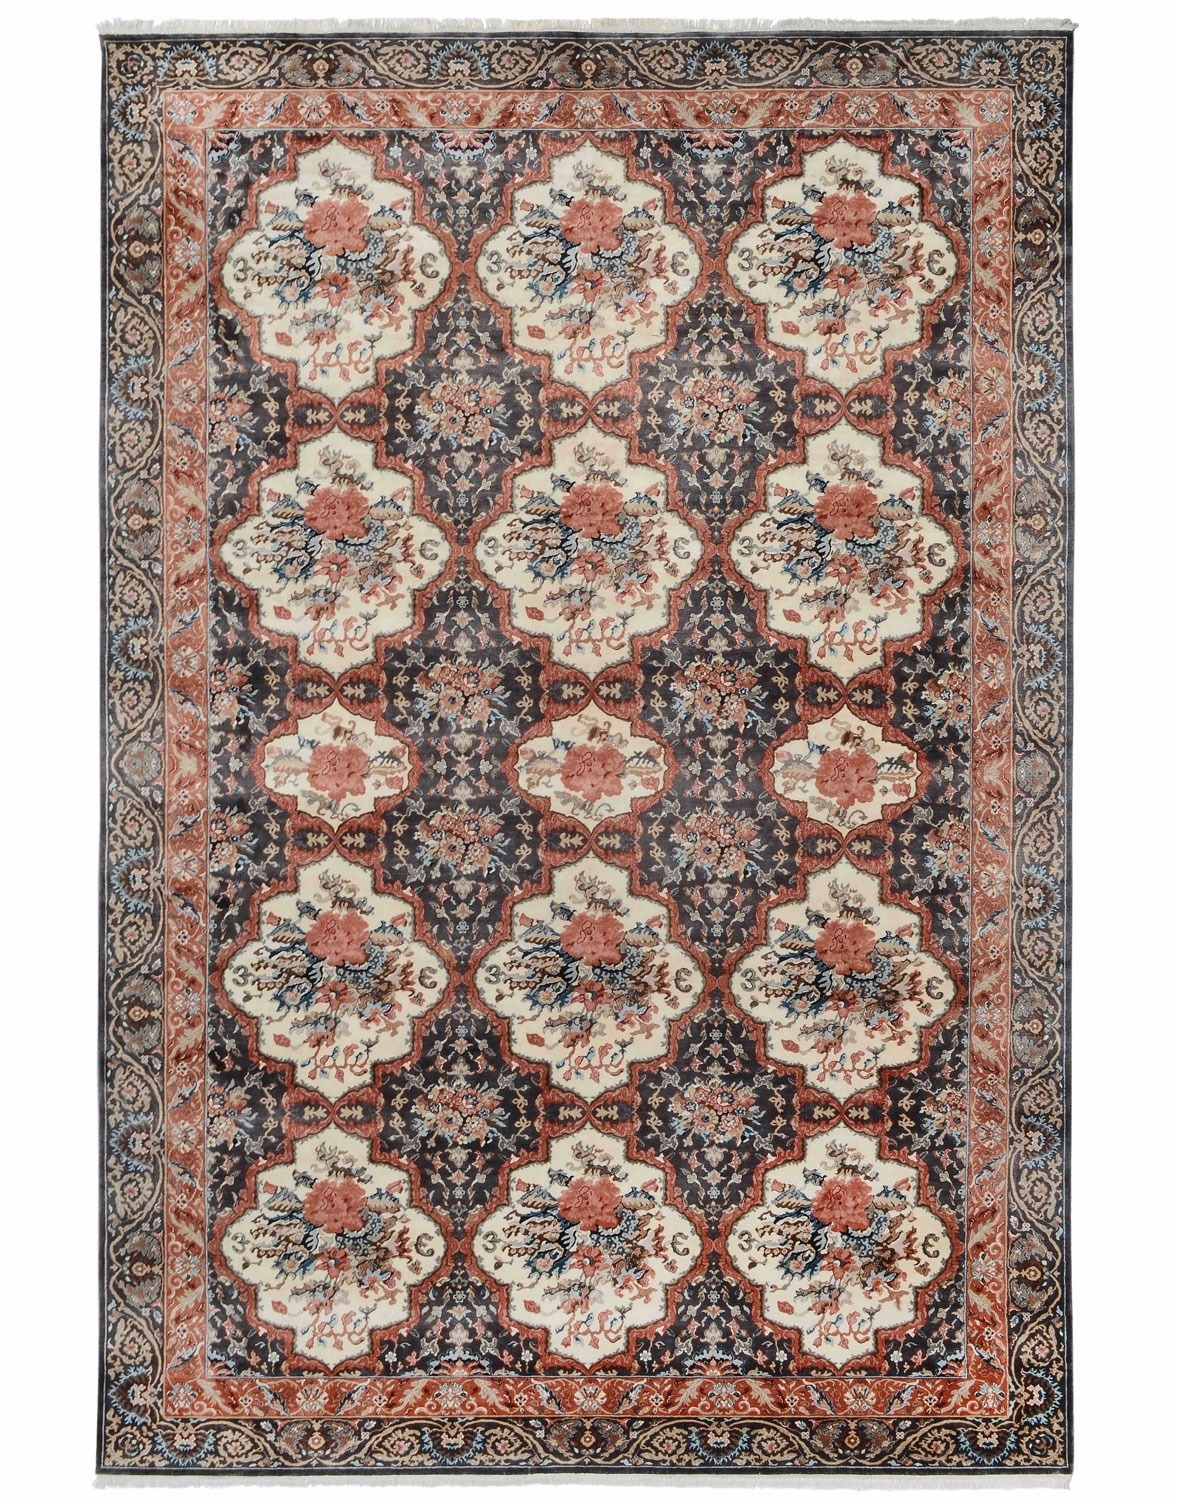 Bakhtiari Workshop design silk pile carpet